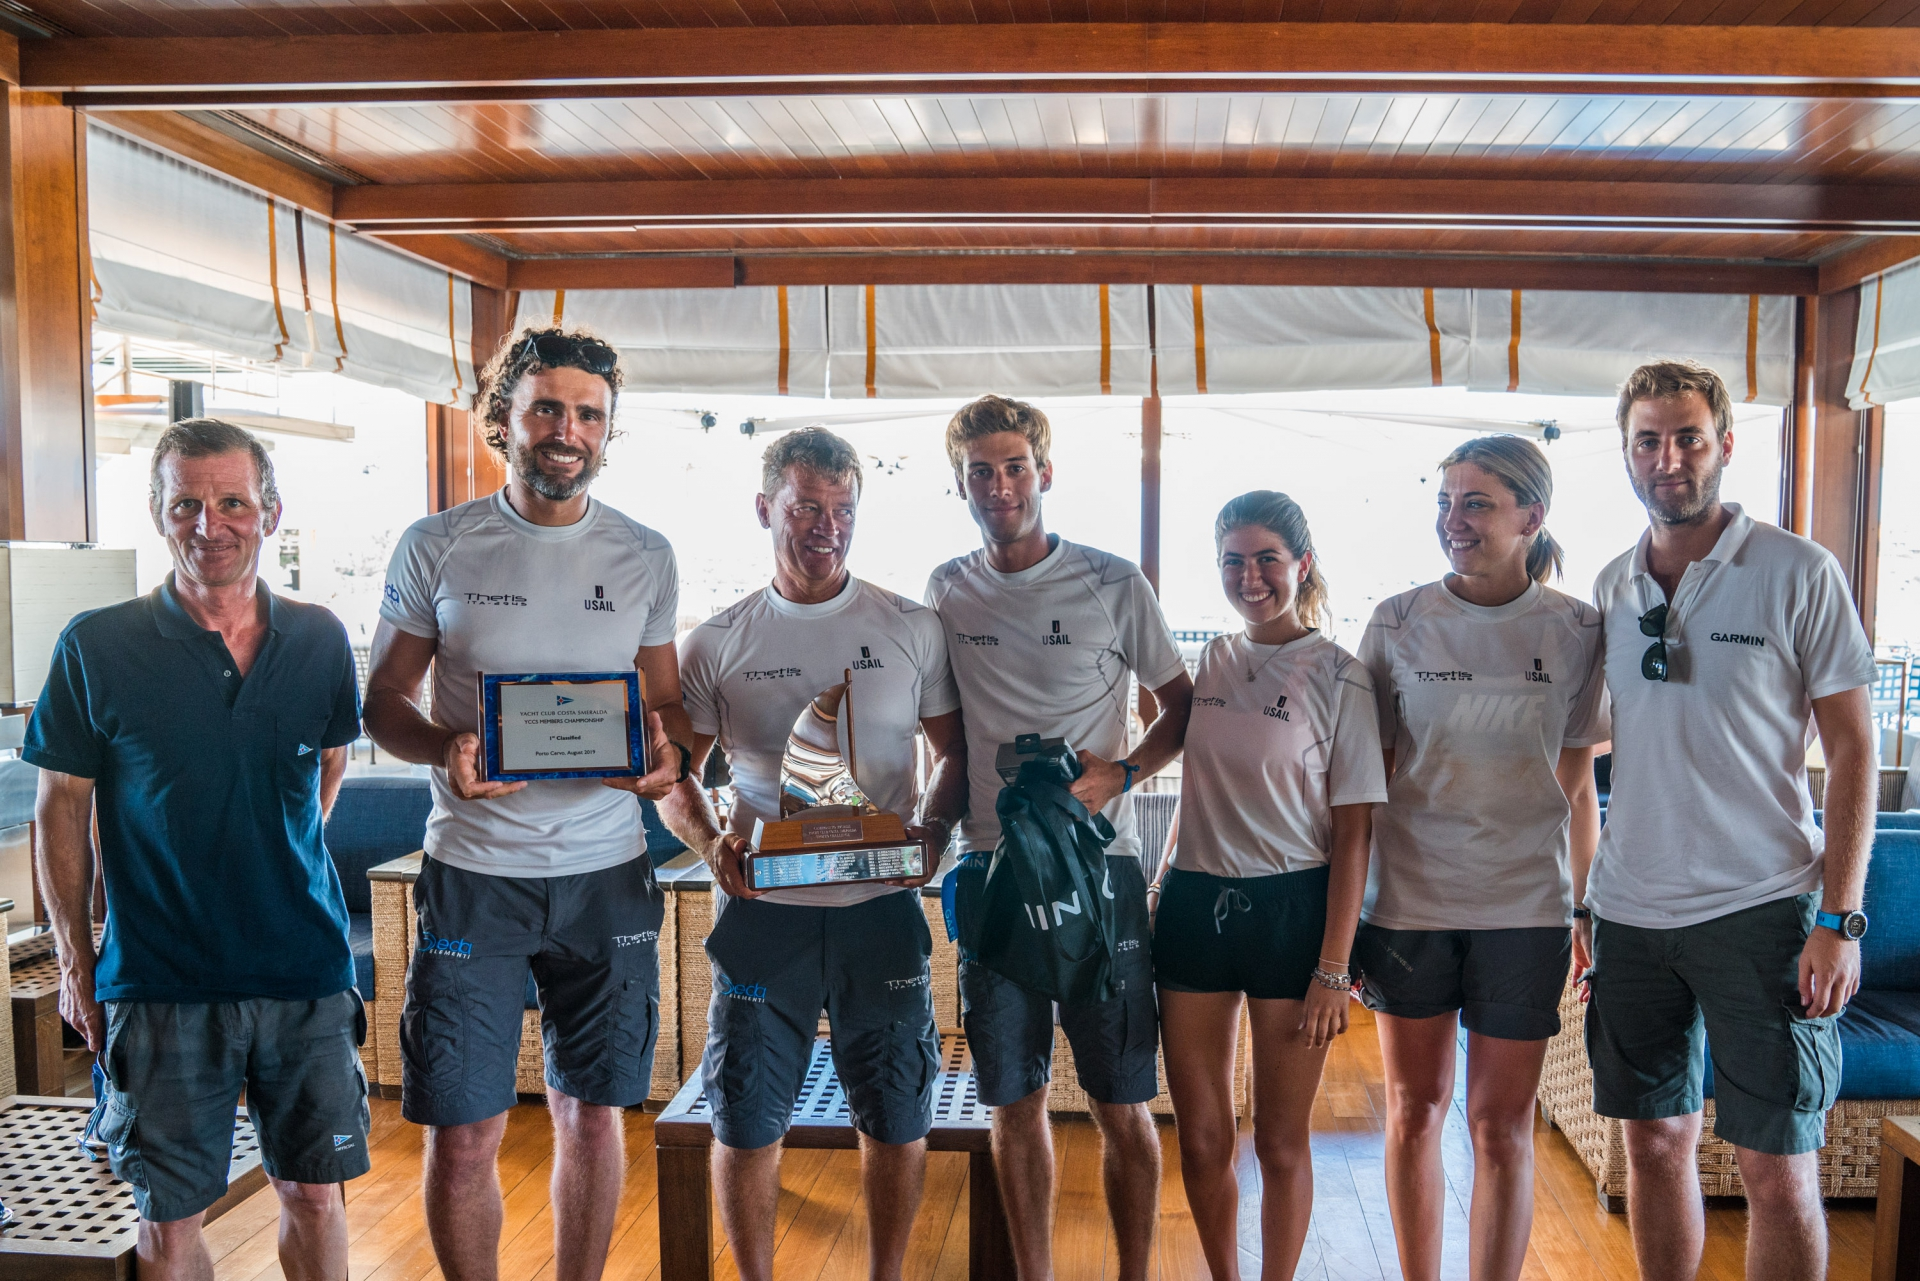 Luca Locatelli crowned Members' Champion 2019 - NEWS - Yacht Club Costa Smeralda